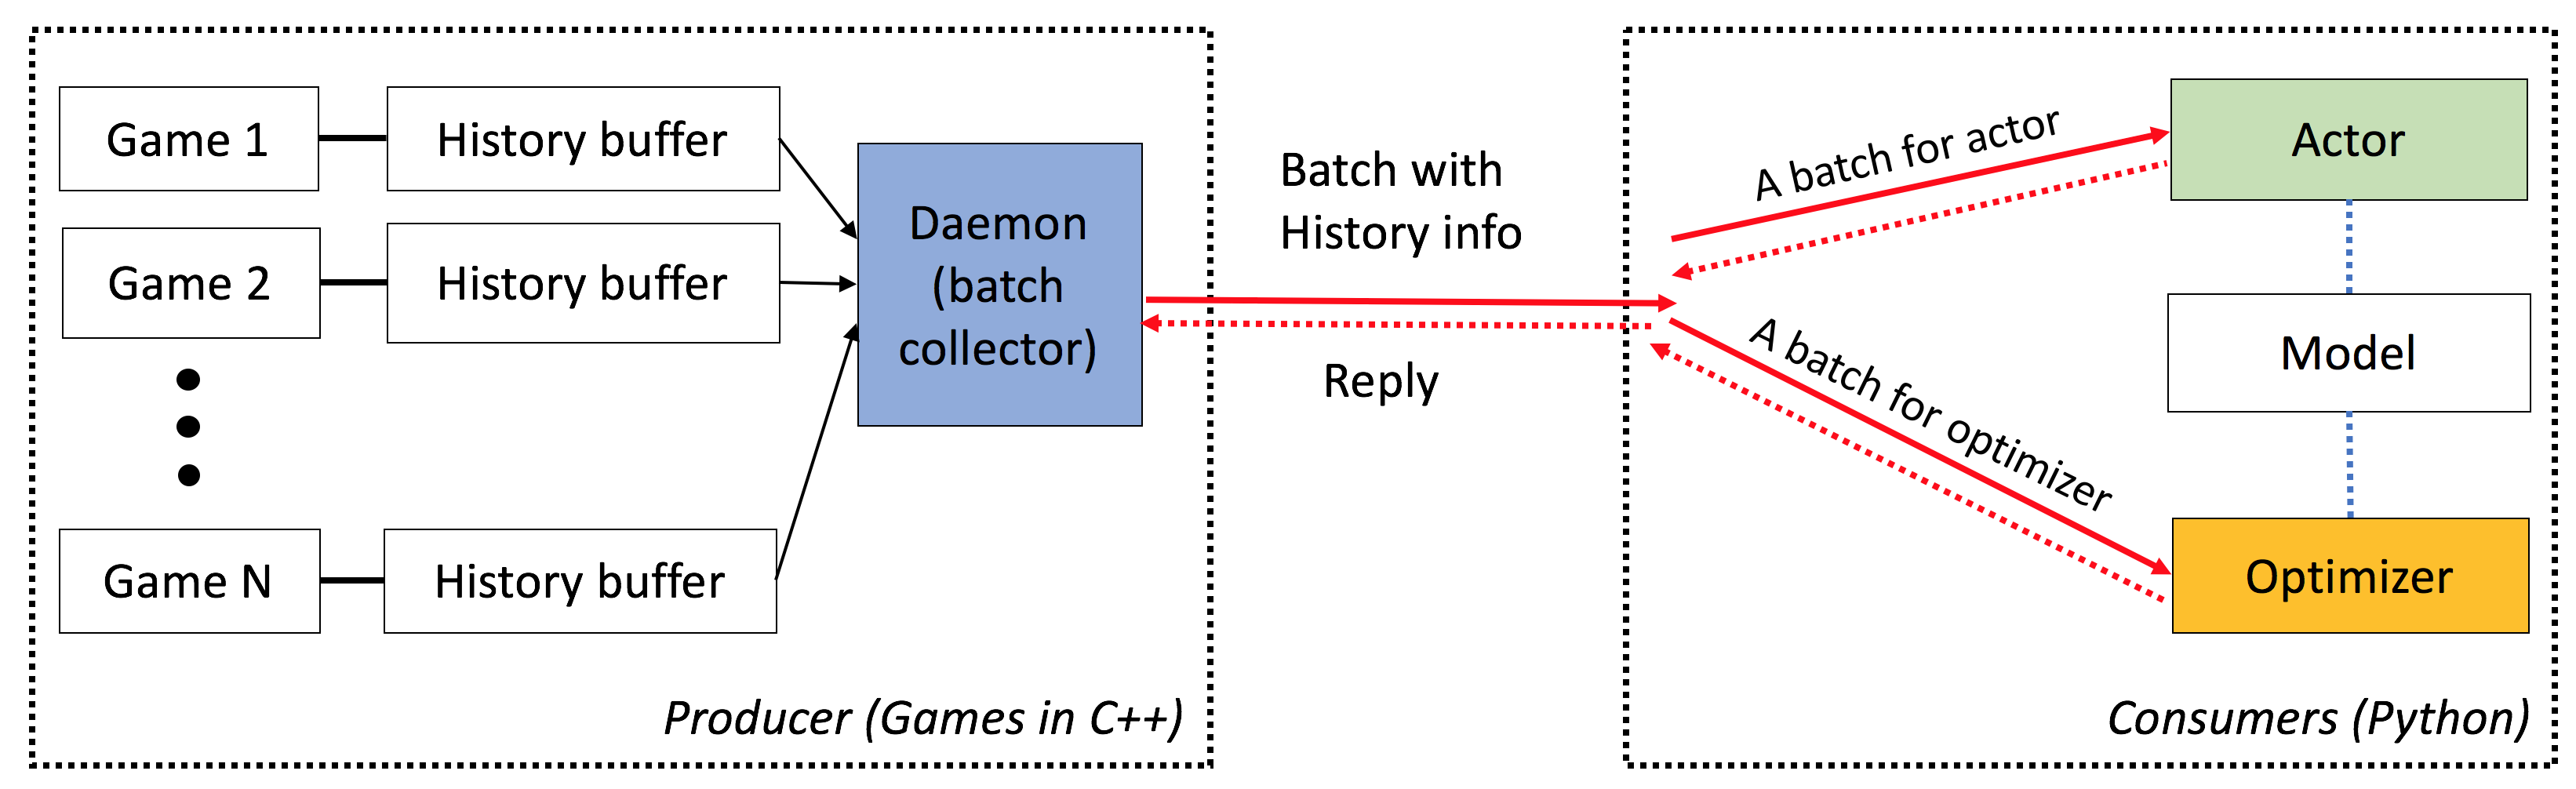 Tutorial on Deep Reinforcement Learning and Games